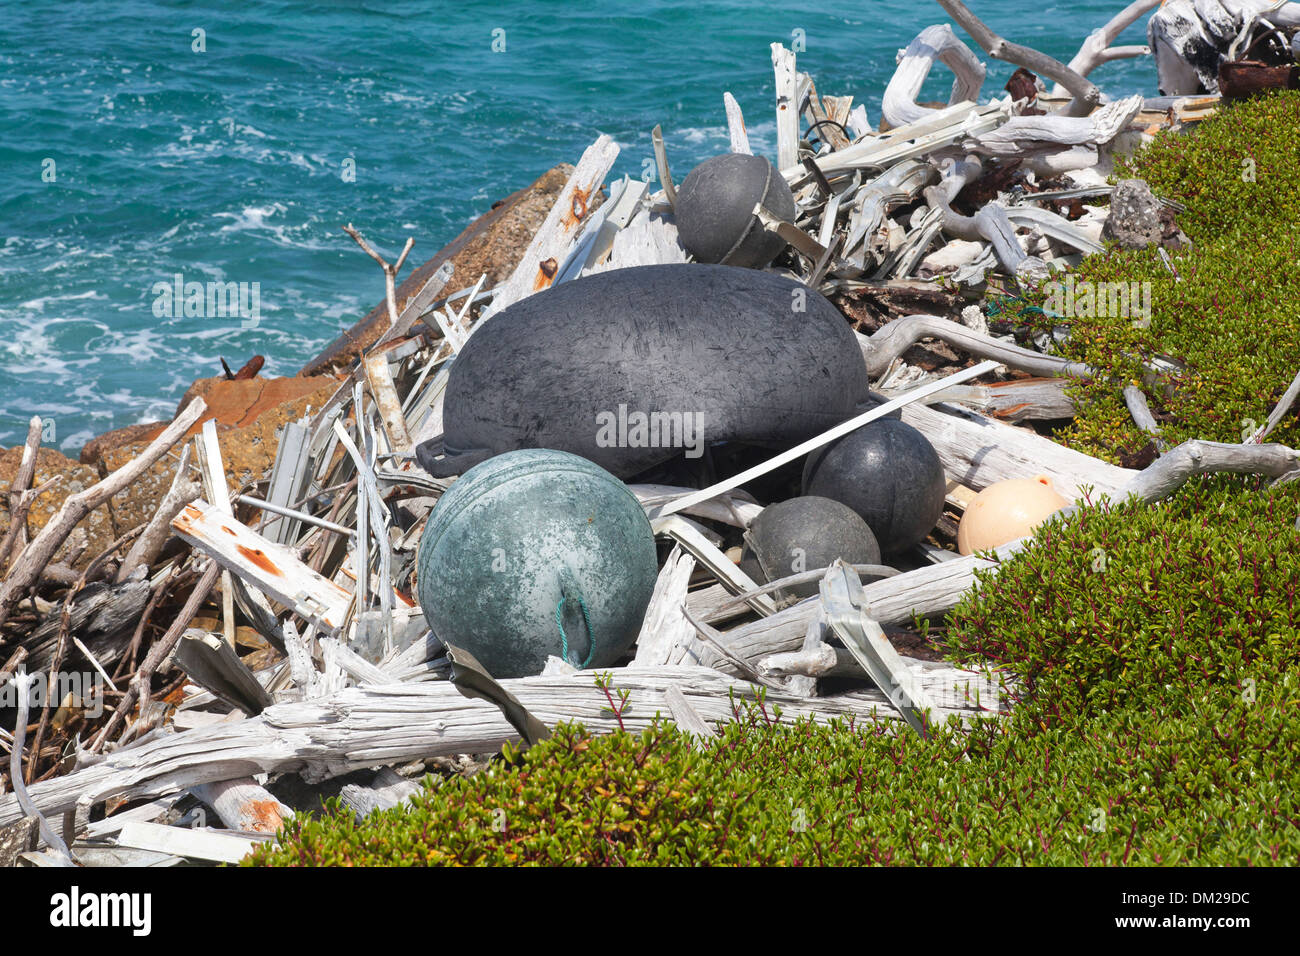 Floats and other marine debris entangled with driftwood washed ashore on a North Pacific island Stock Photo